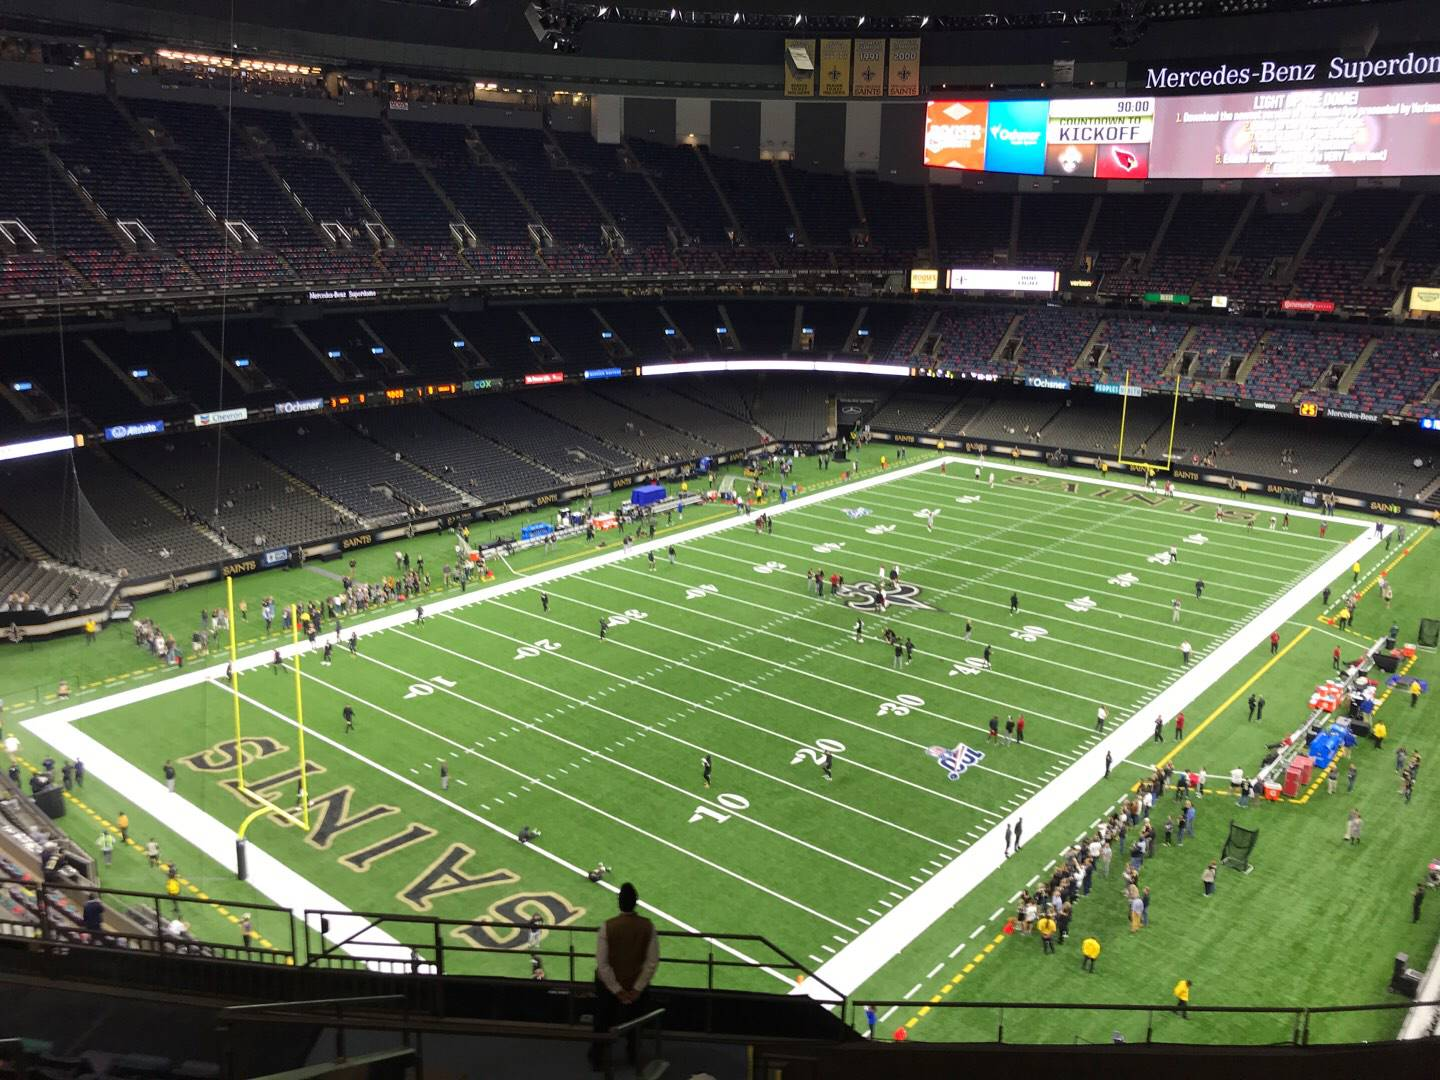 Mercedes-Benz Superdome Section 622 Row 12 Seat 14